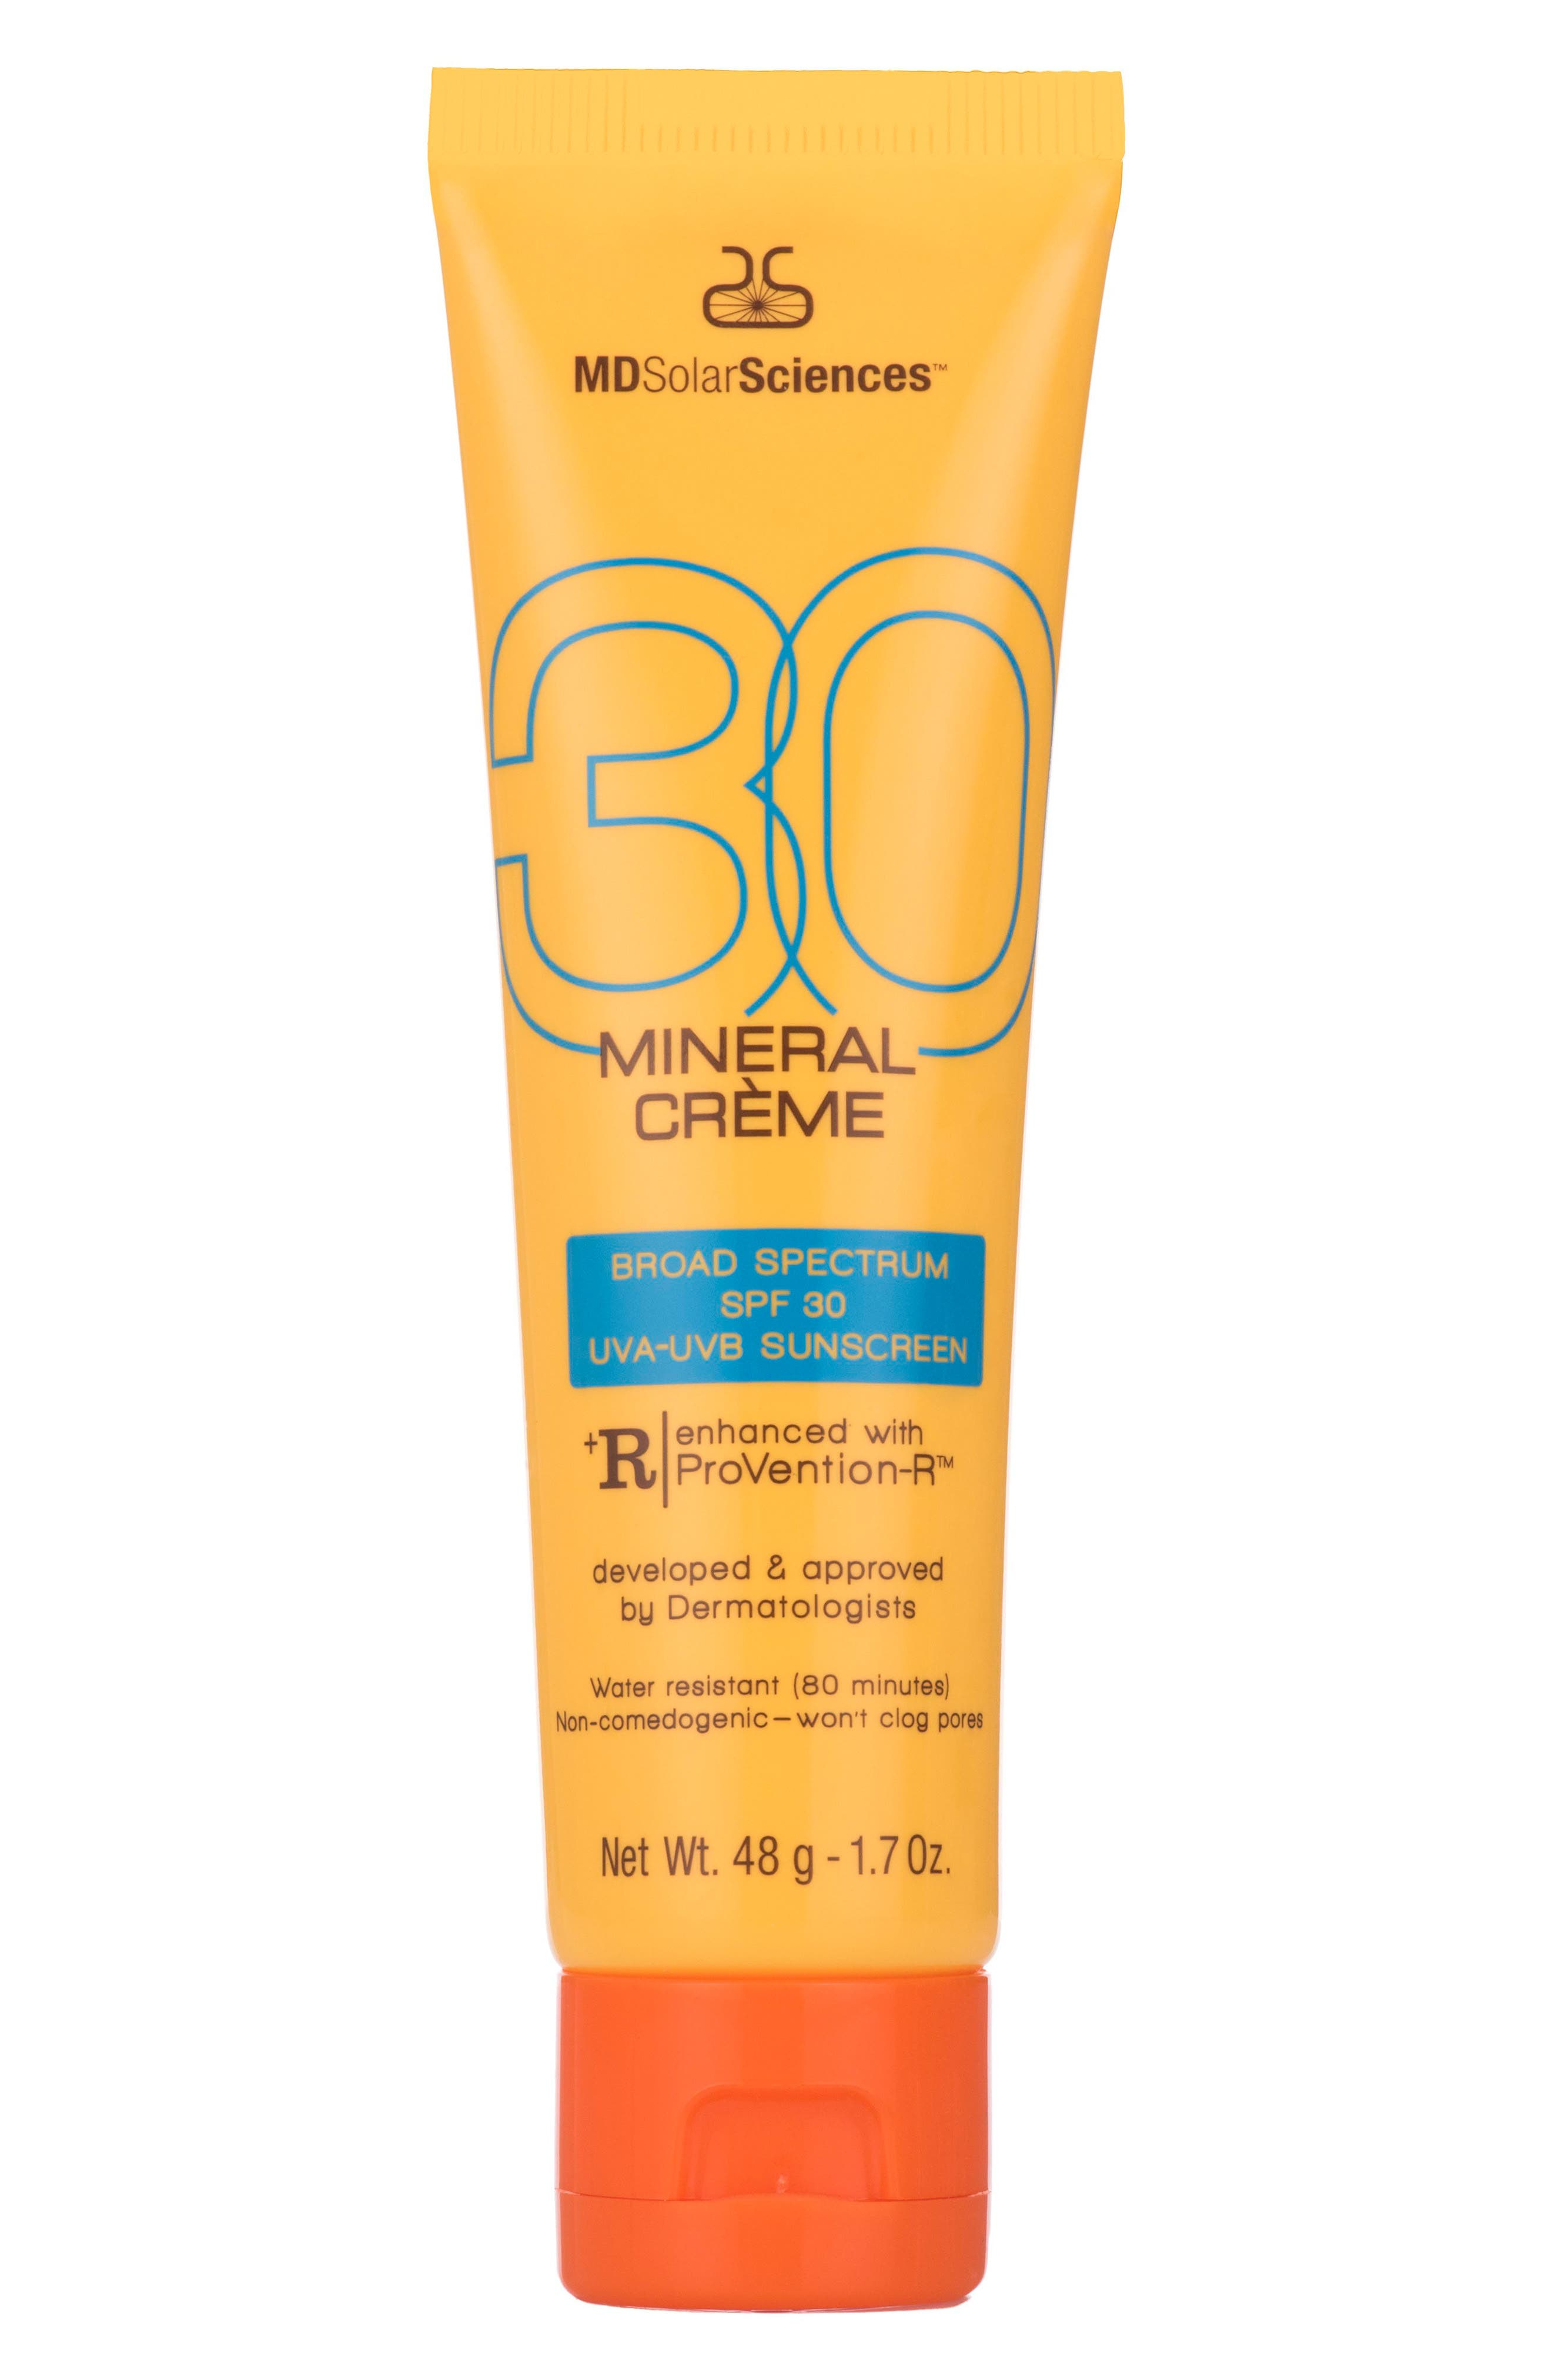 MDSolarSciences™ Mineral Crème Broad Spectrum SPF 30 Sunscreen